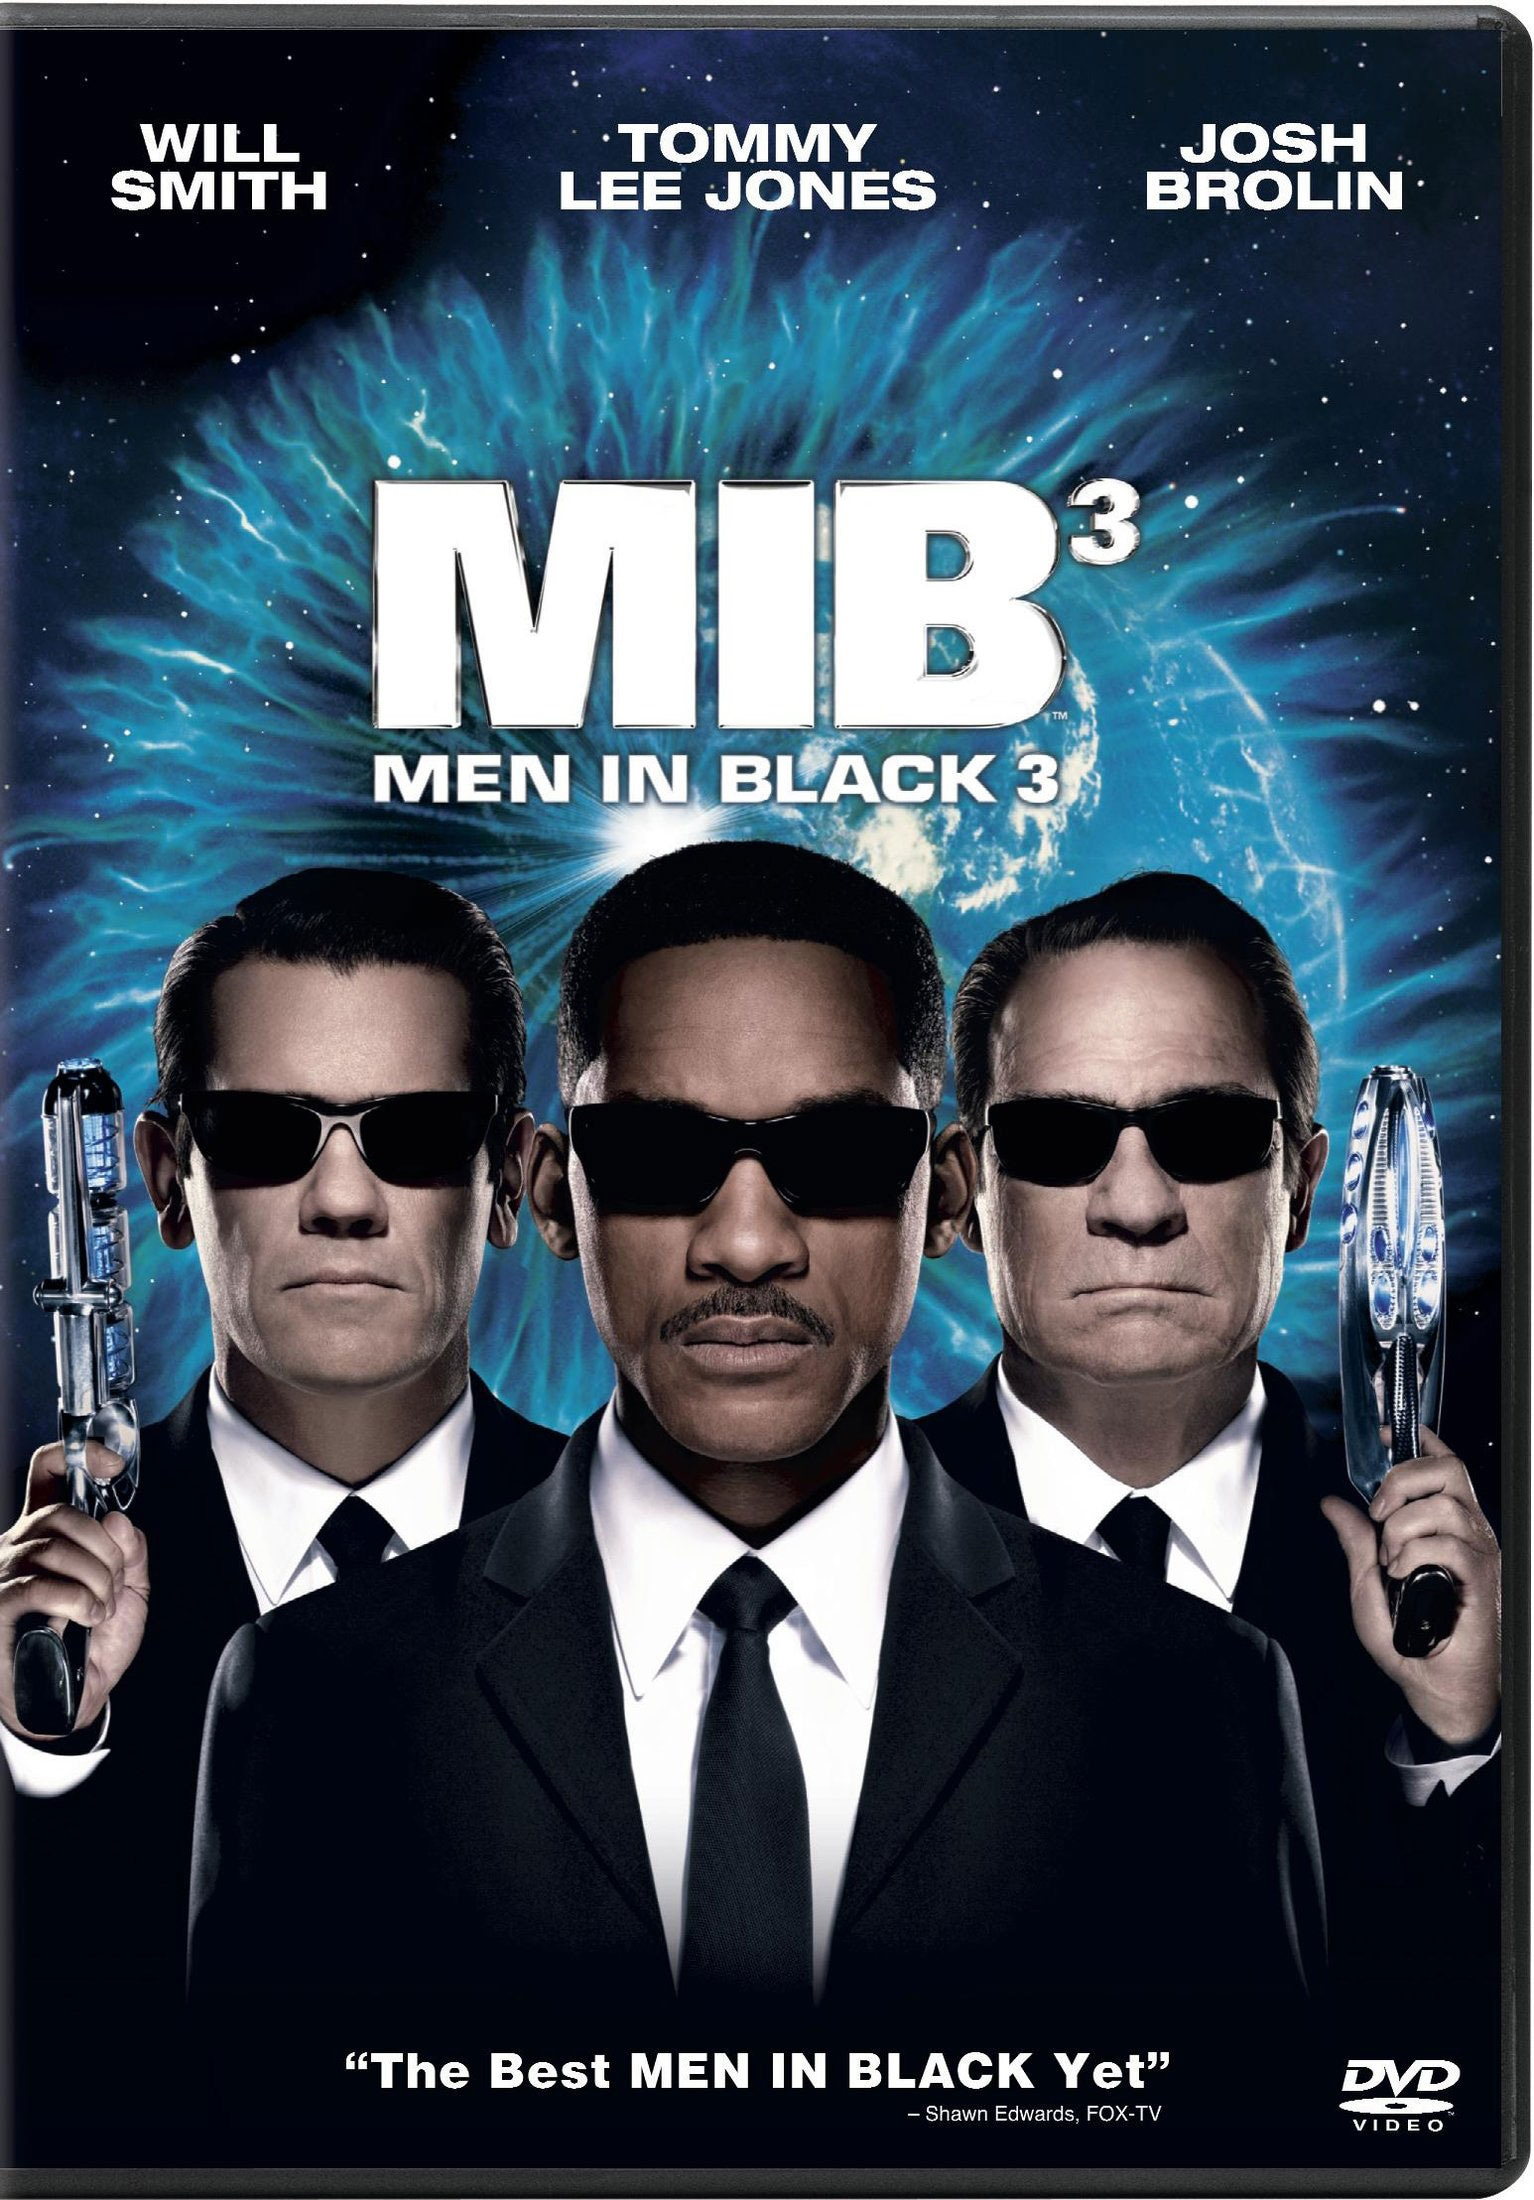 Men in Black 3 (DVD)